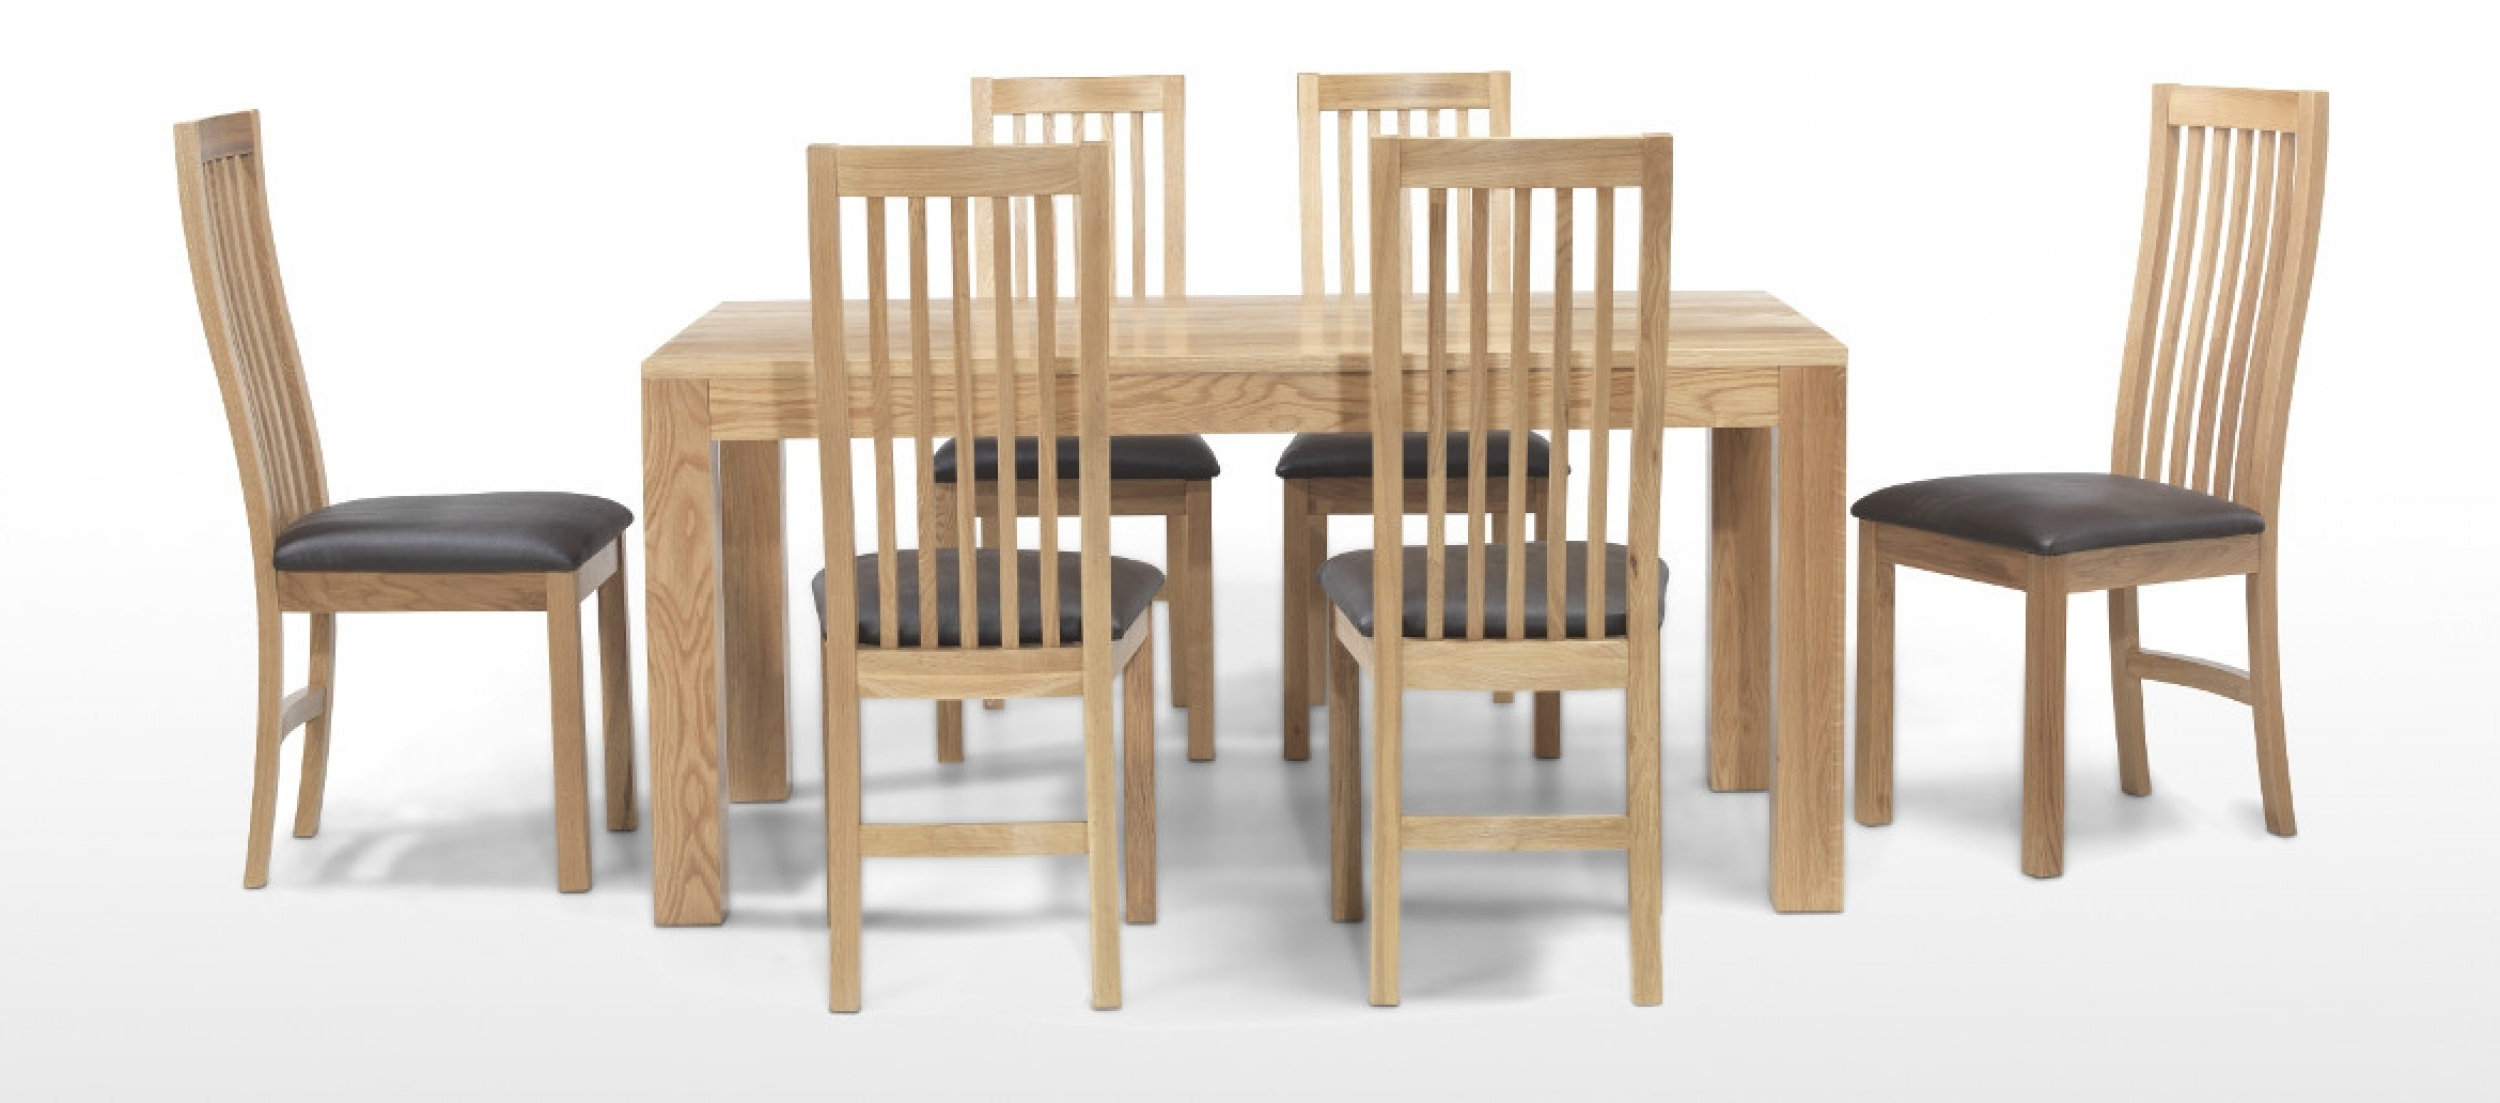 Quercus Living With Favorite Extending Dining Tables With 6 Chairs (Gallery 2 of 25)